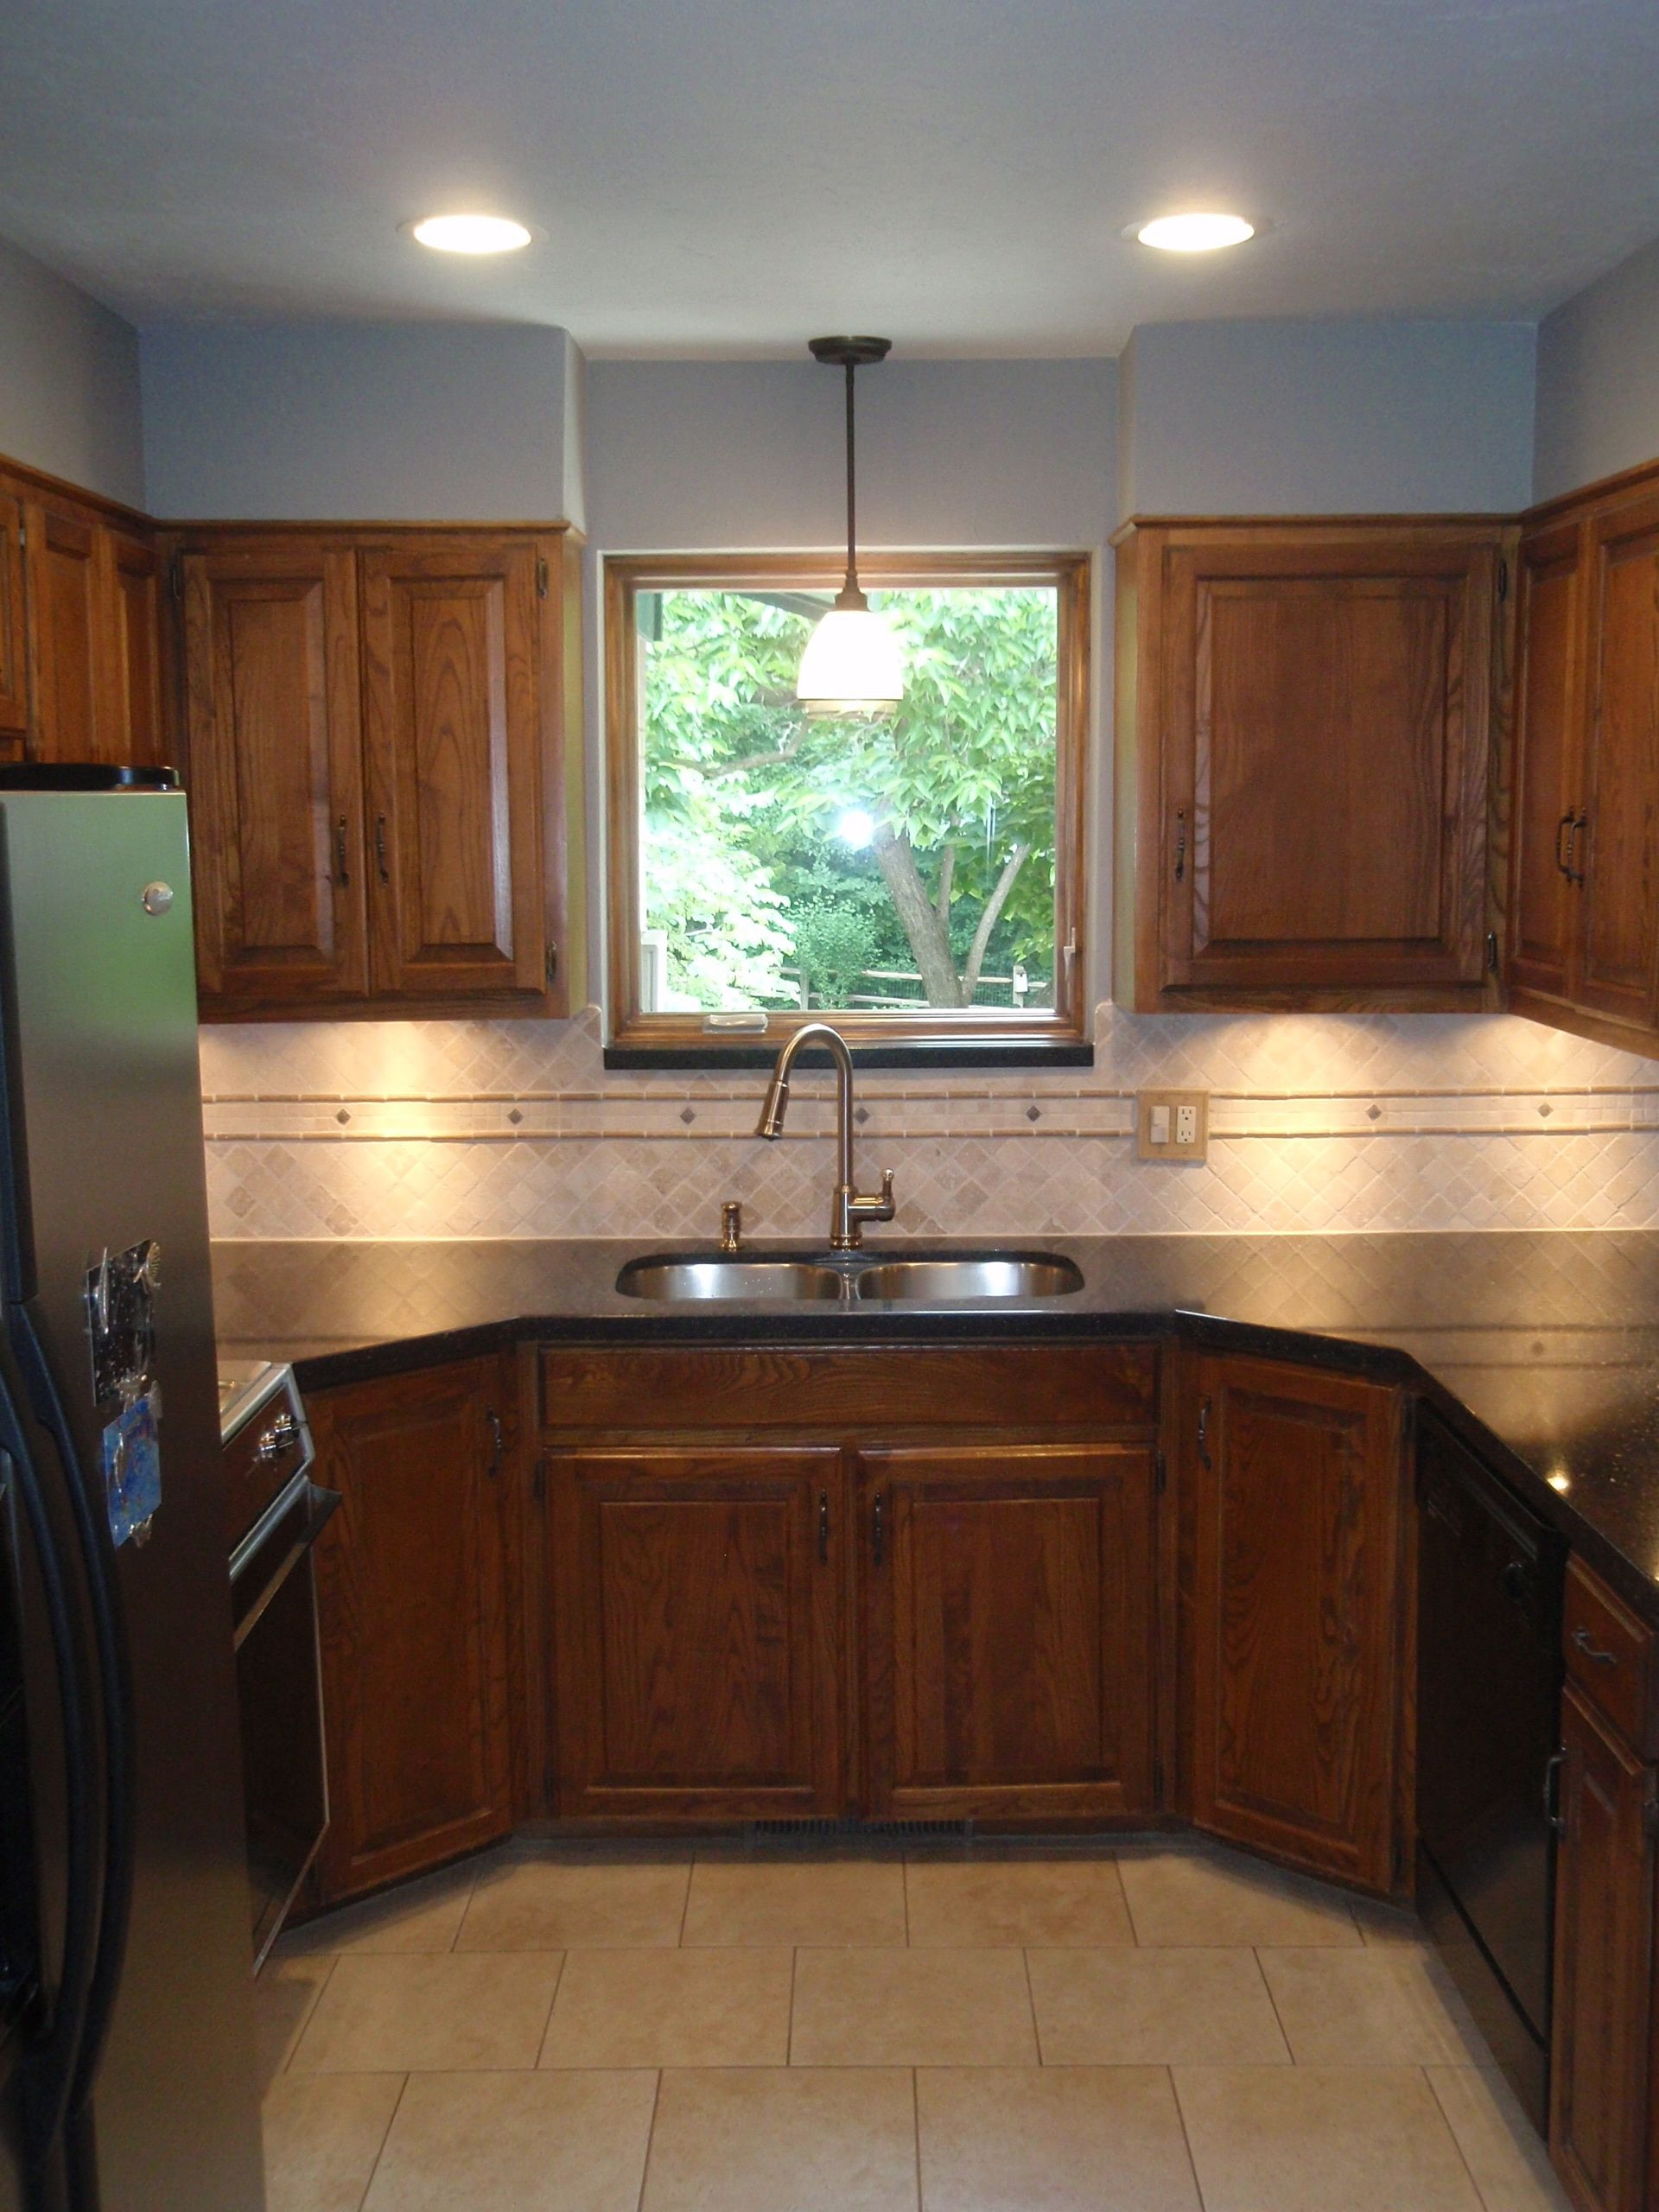 kitchen remodel okc narrow cart oklahoma city edmond we removed the 70 s light grid and popcorn texture then installed recessed lights under cabinet